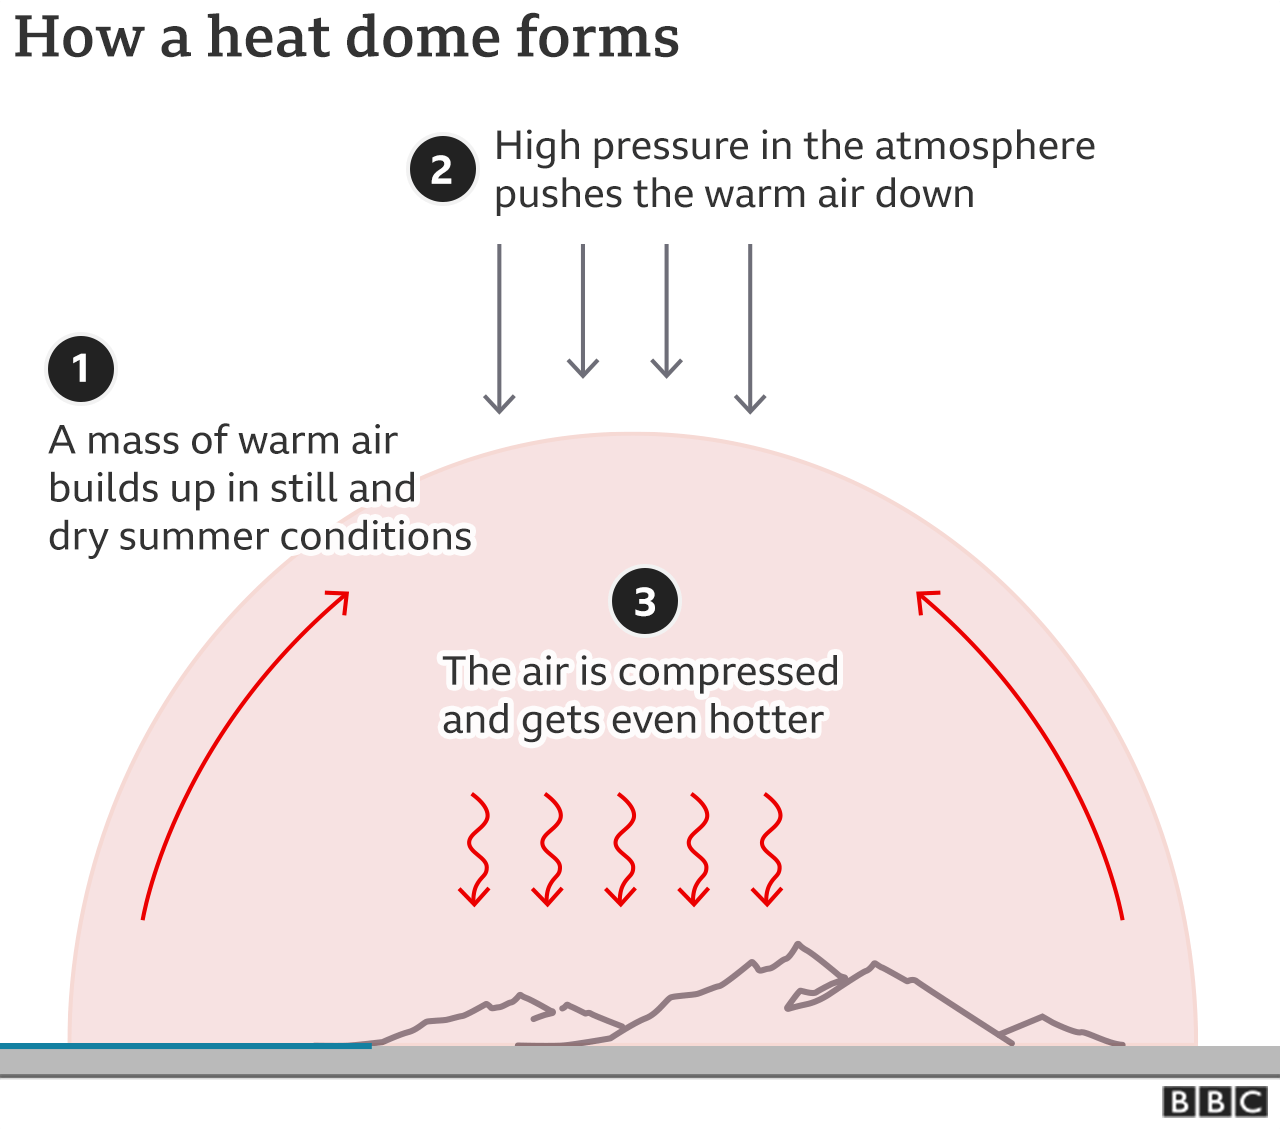 Graphic showing how a heat dome forms